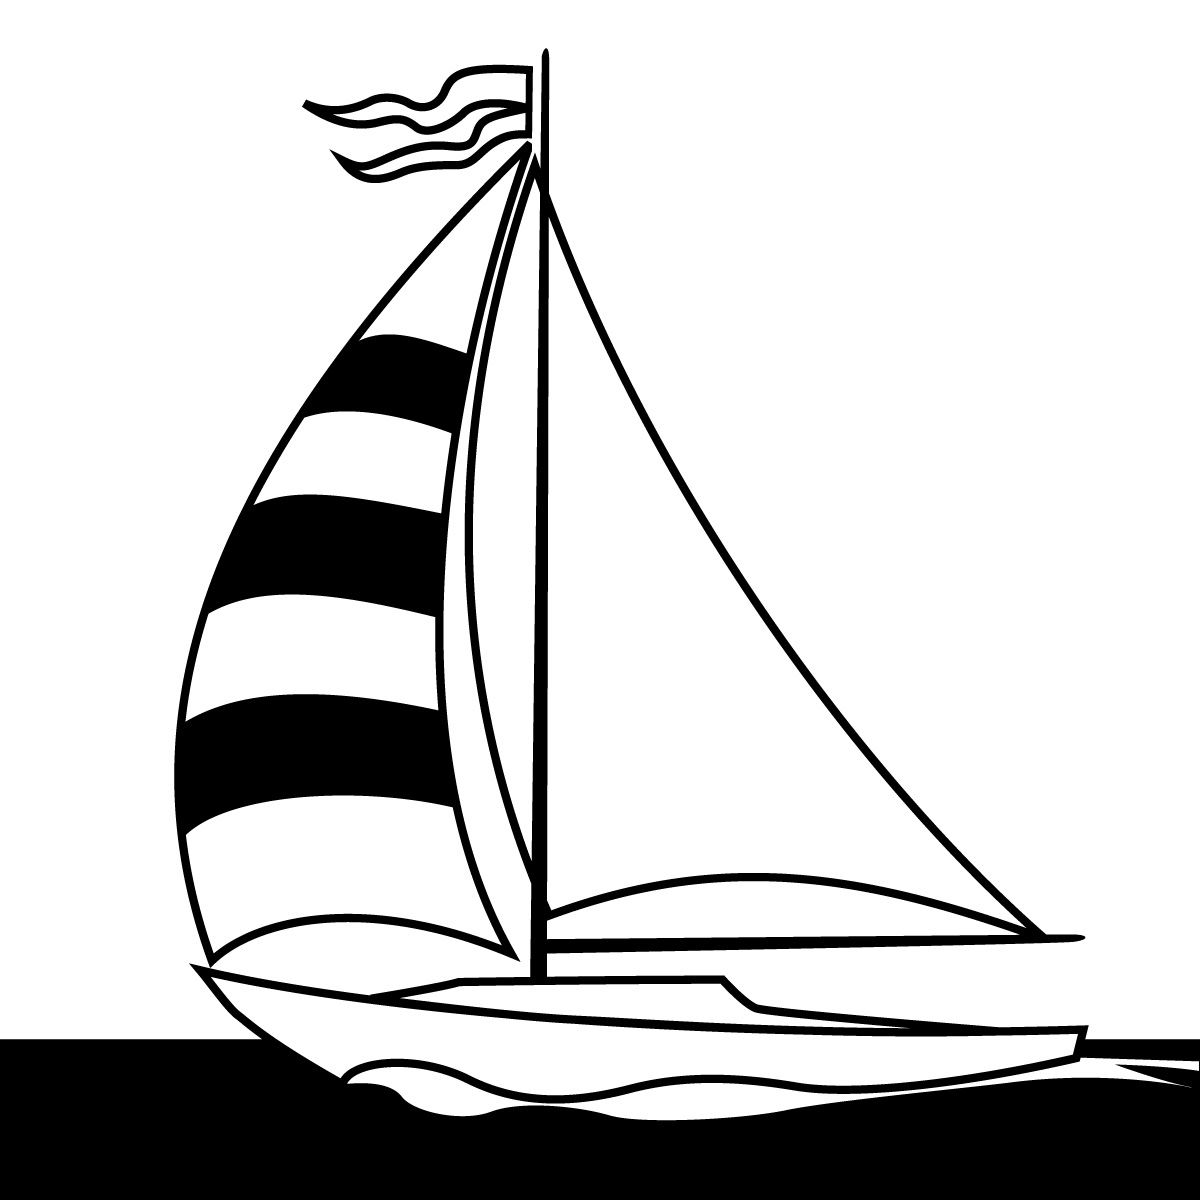 Sailing boat drawing of. Sail clipart yatch image library download